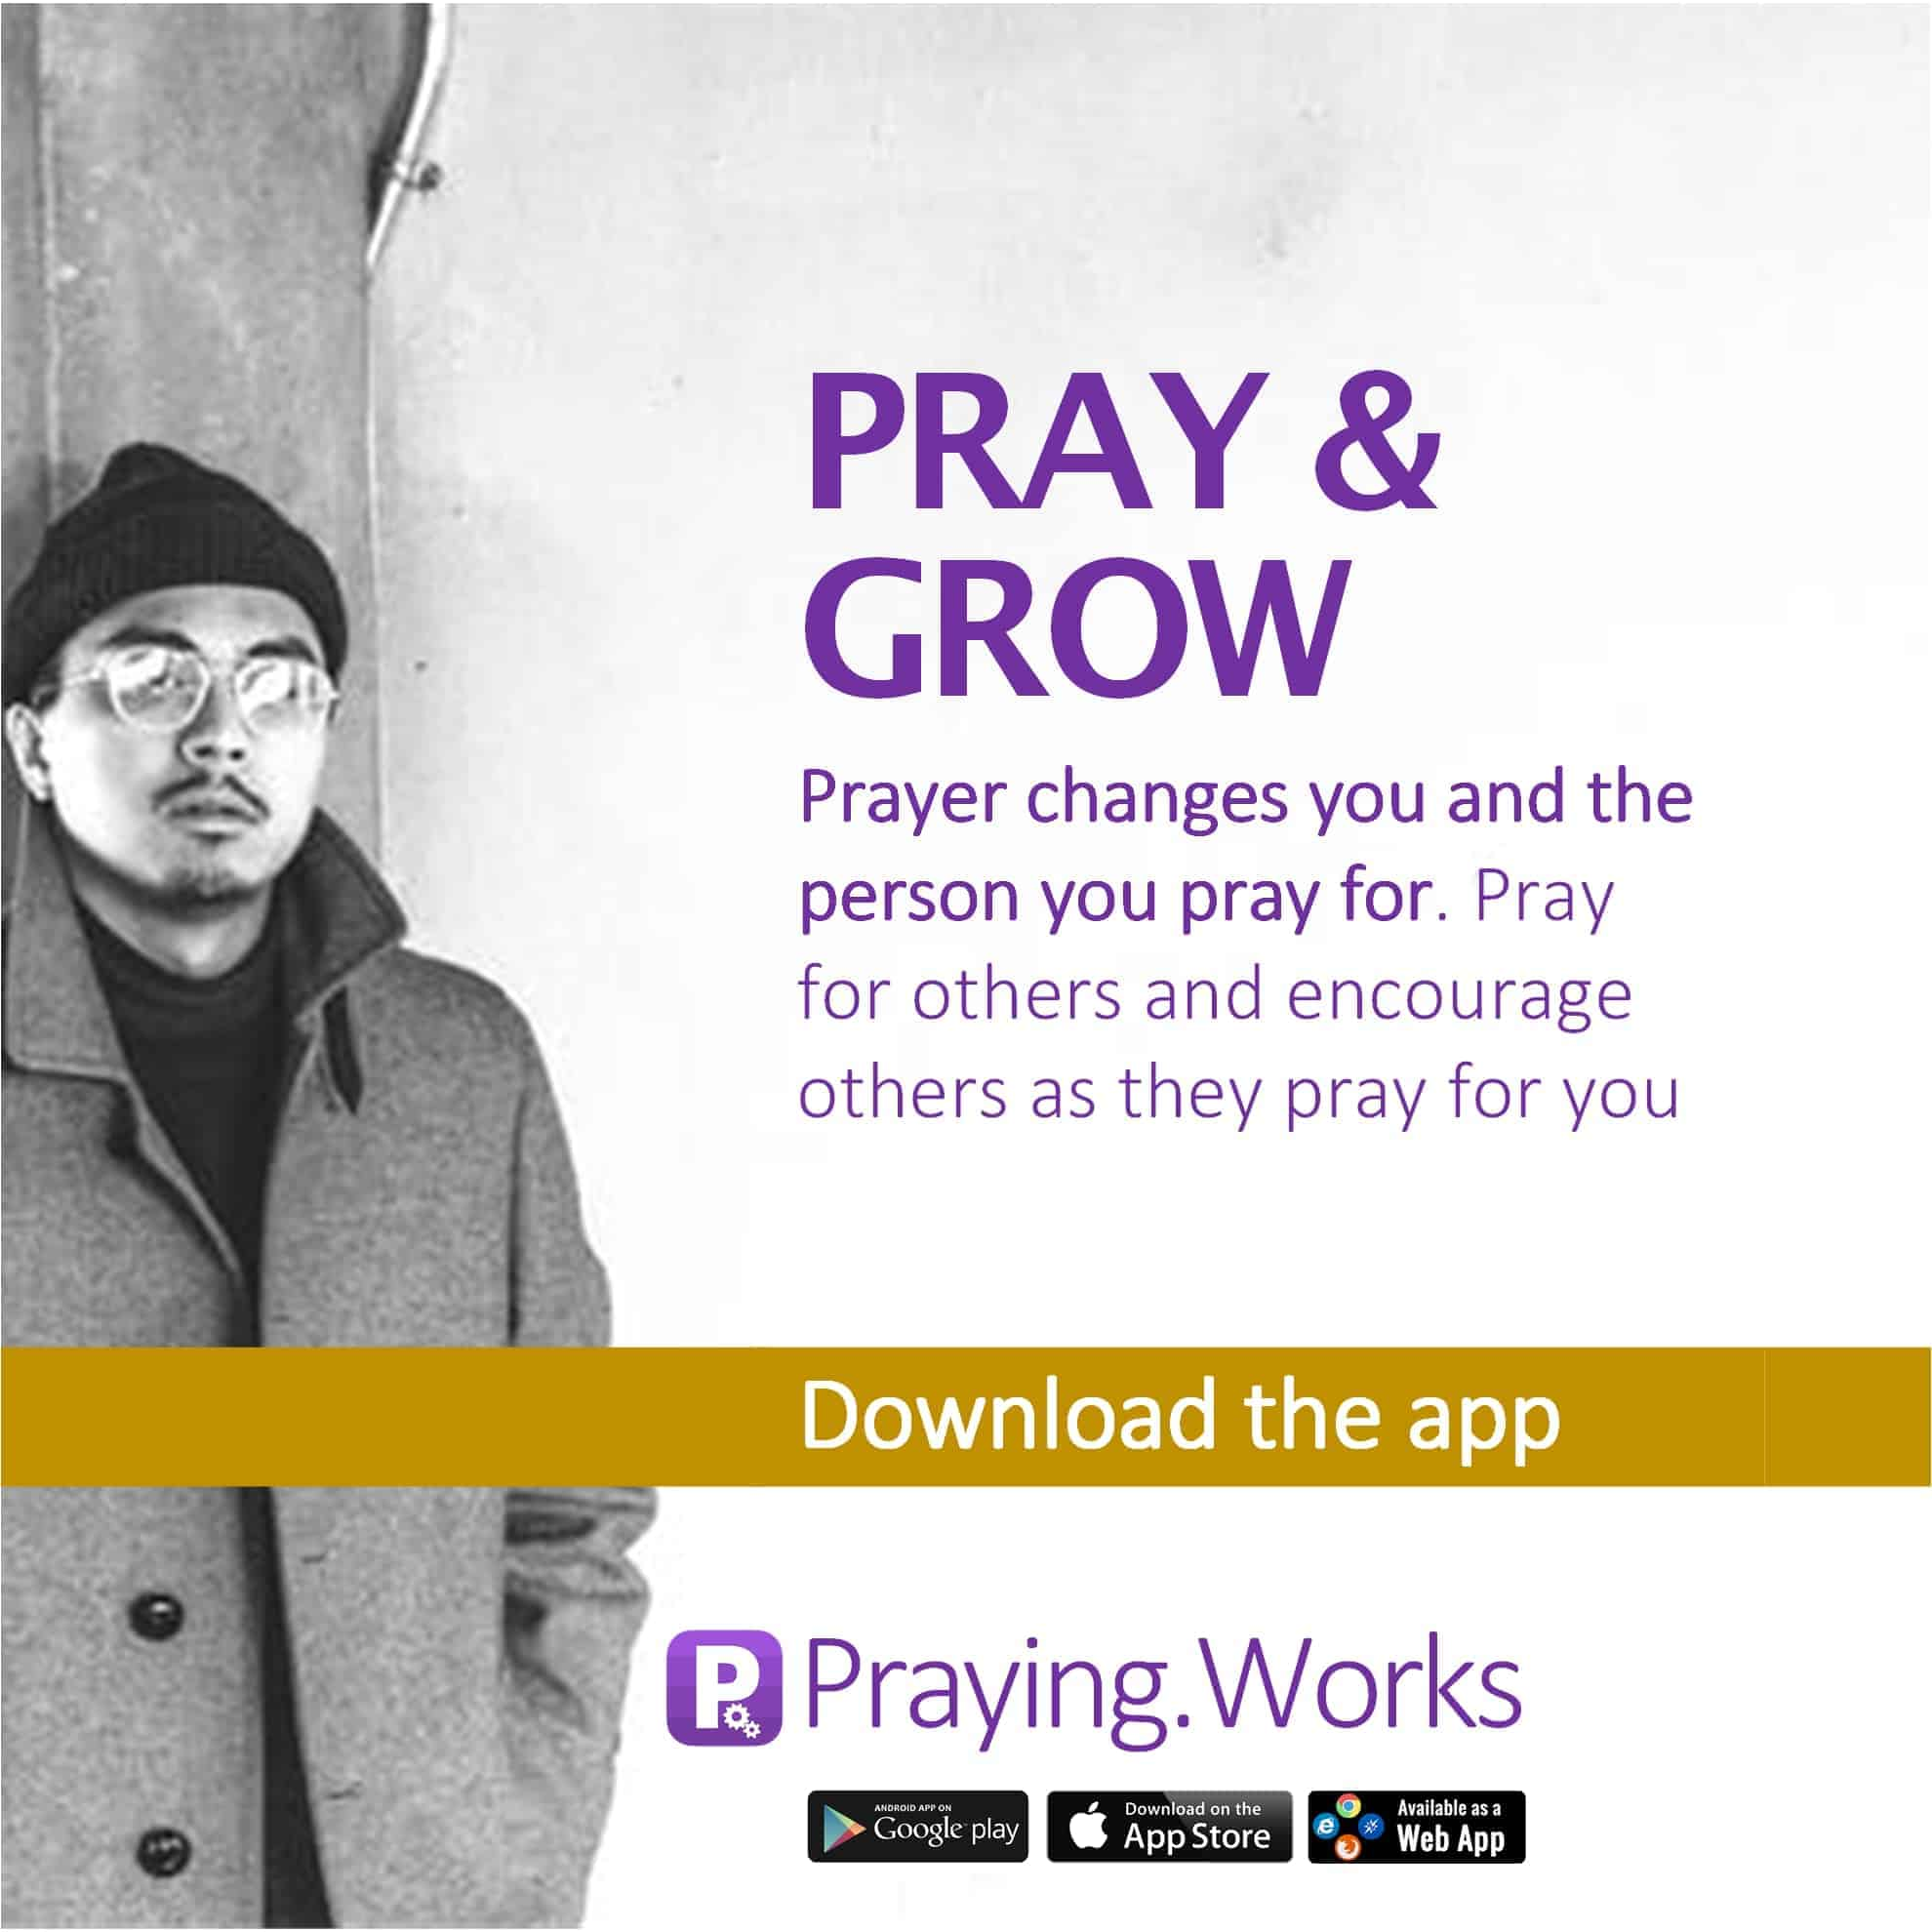 Achieve,Apps for daily prayers,Apps for prayer request,FaithGoals,Goals,god,Jessu,Jesus,prayer,prayer app,prayer network,Praying,PrayingWorksApp #PrayWhenThereSeemsToBeNoWay, #Achieve, #Appsfordailyprayers #Appsforprayerrequest #FaithGoals #Goals #god #Jesus #prayer #prayerapp #prayernetwork #Praying #PrayingWorksApp